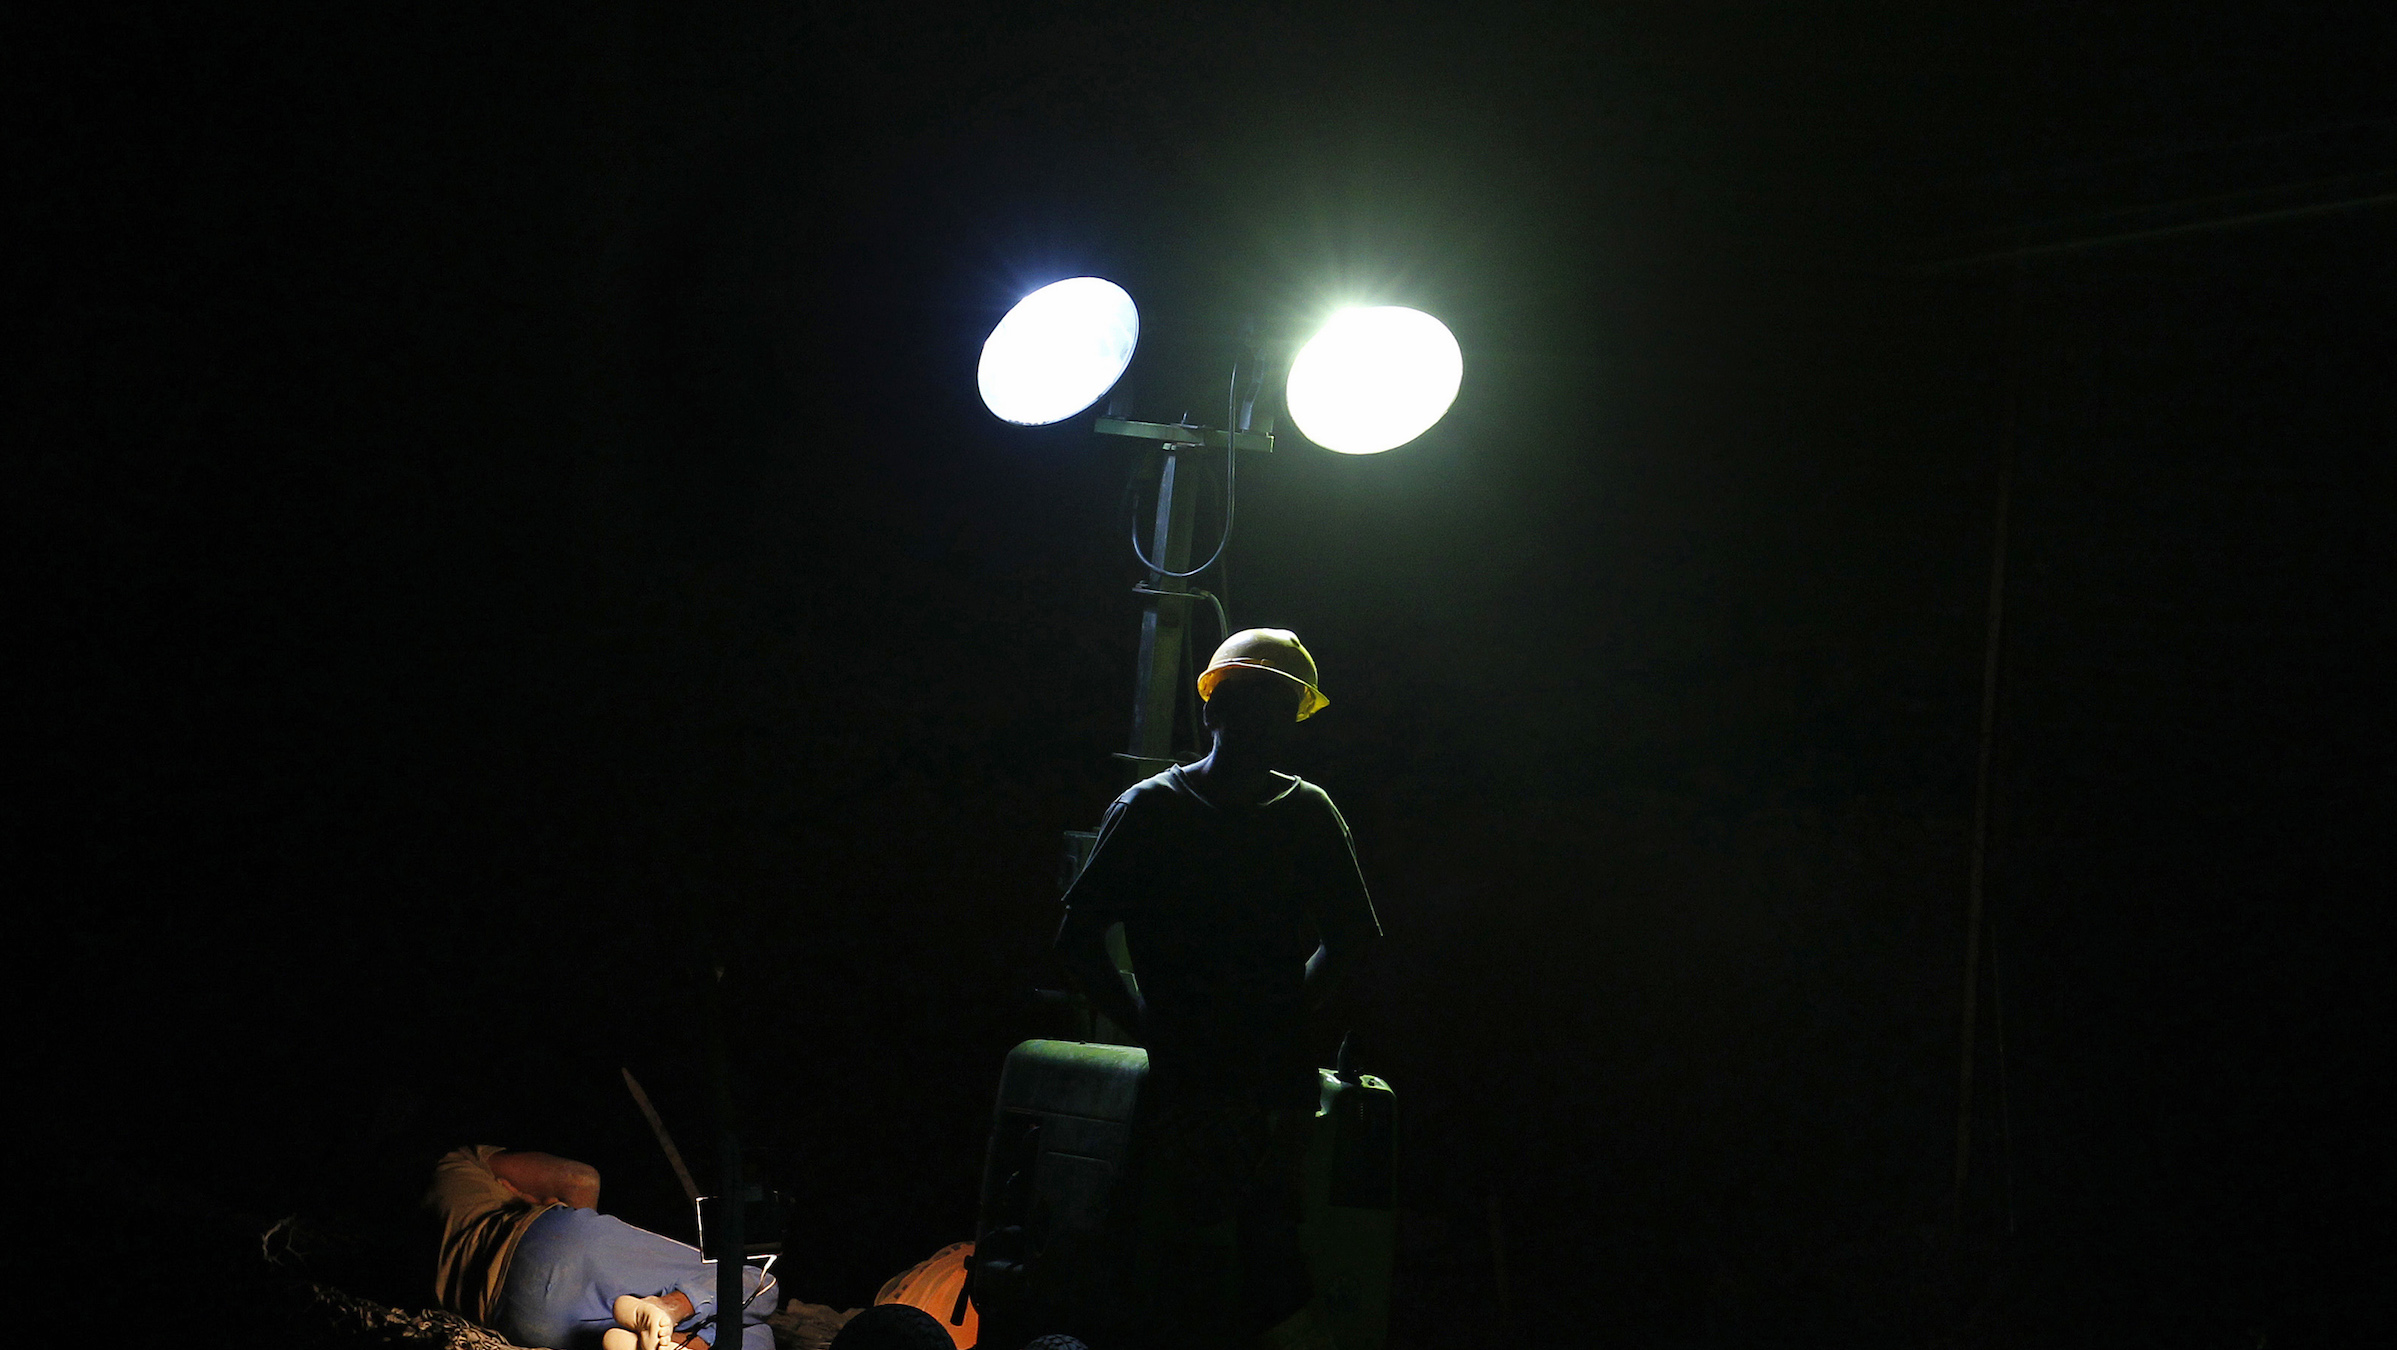 A worker stands next to a light stand as another worker sleeps after an overnight shift at a road construction site in Colombo, early morning January 4, 2014. REUTERS/Dinuka Liyanawatte (SRI LANKA - Tags: BUSINESS CONSTRUCTION SOCIETY EMPLOYMENT) - RTX171BV